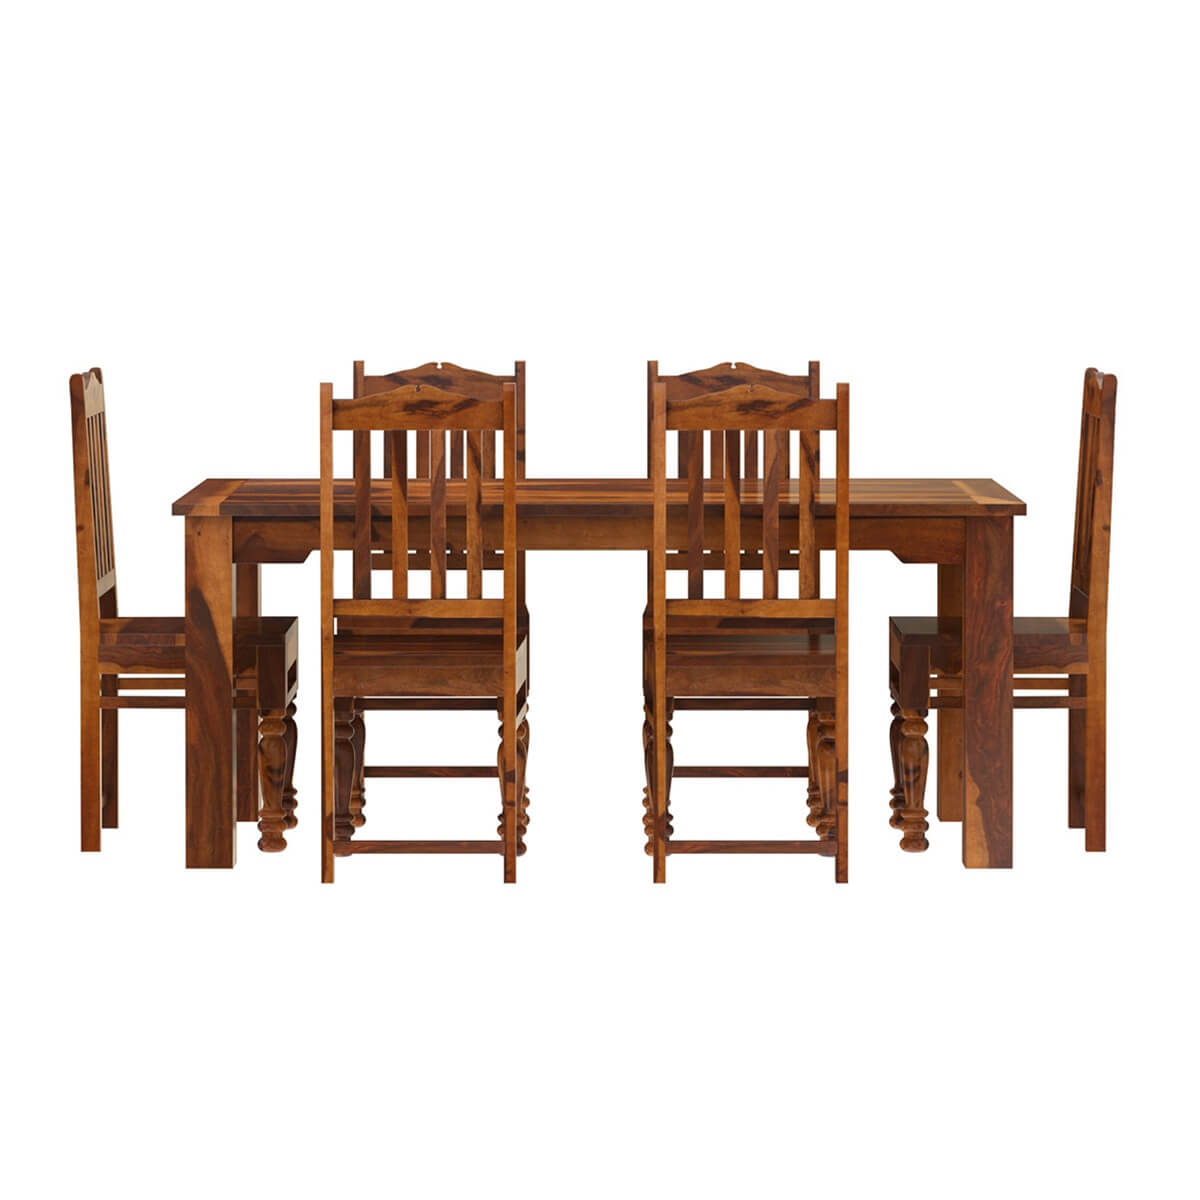 Solid Wood Kitchen Tables: Rustic Solid Wood Dallas Dining Table With Chairs Set